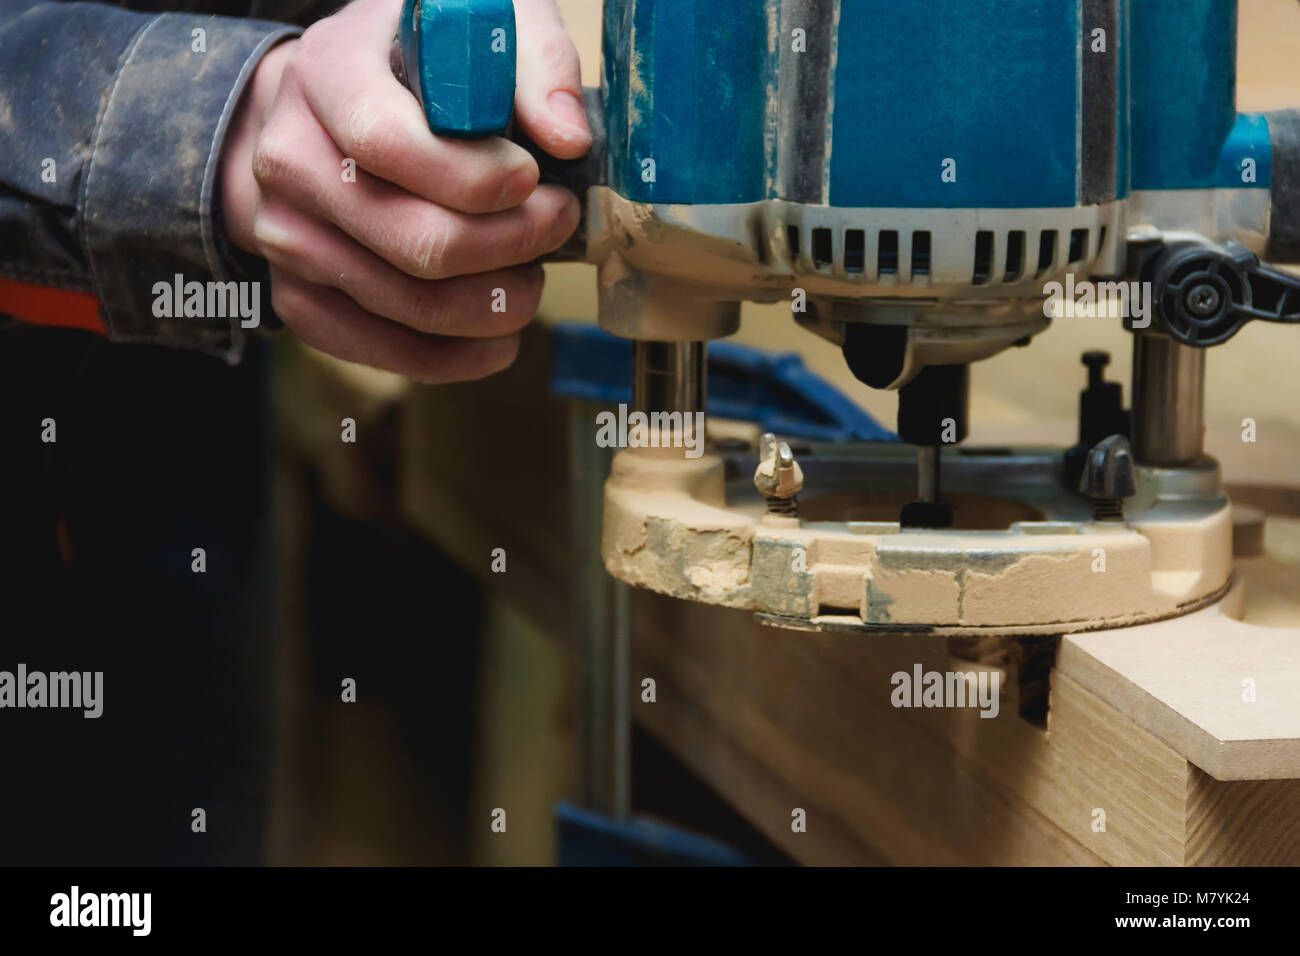 Carpenter Working of Manual Milling Machine in Carpentry Workshop with  Copyspace. Industrial Manufactoring Concept.